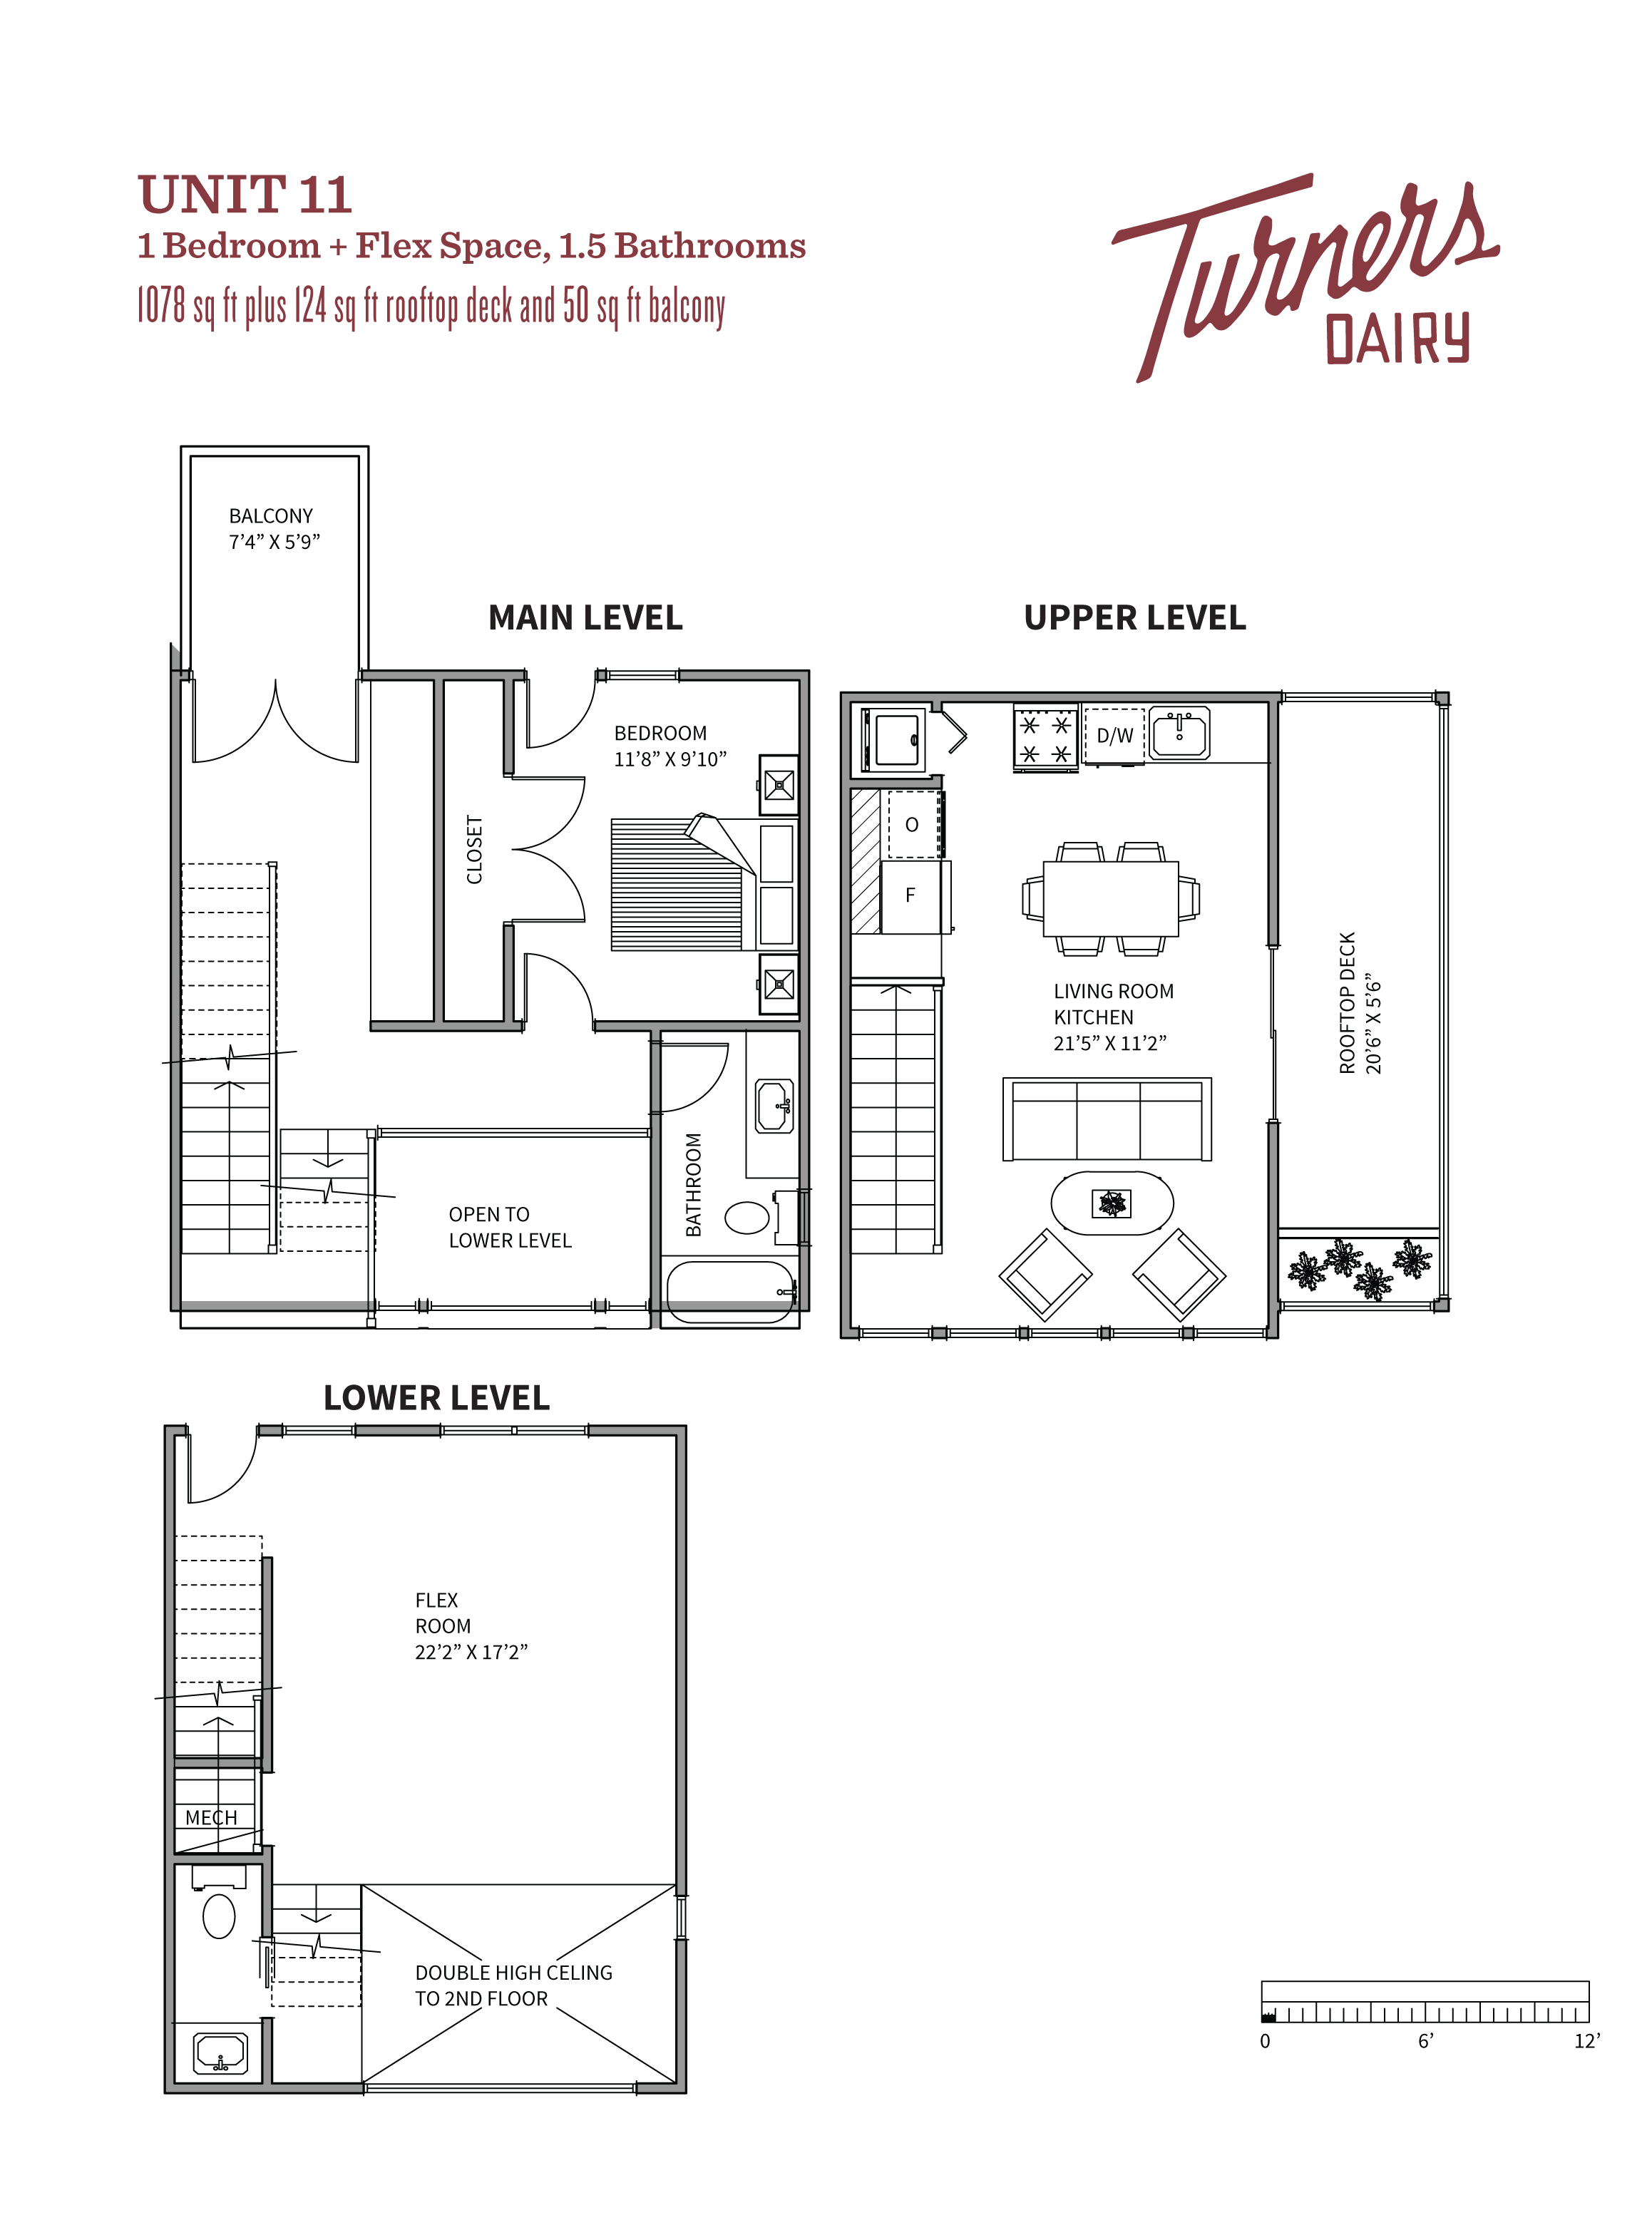 Thumbnail of Unit 11 floorplan of Turners Dairy Riley Park townhomes.